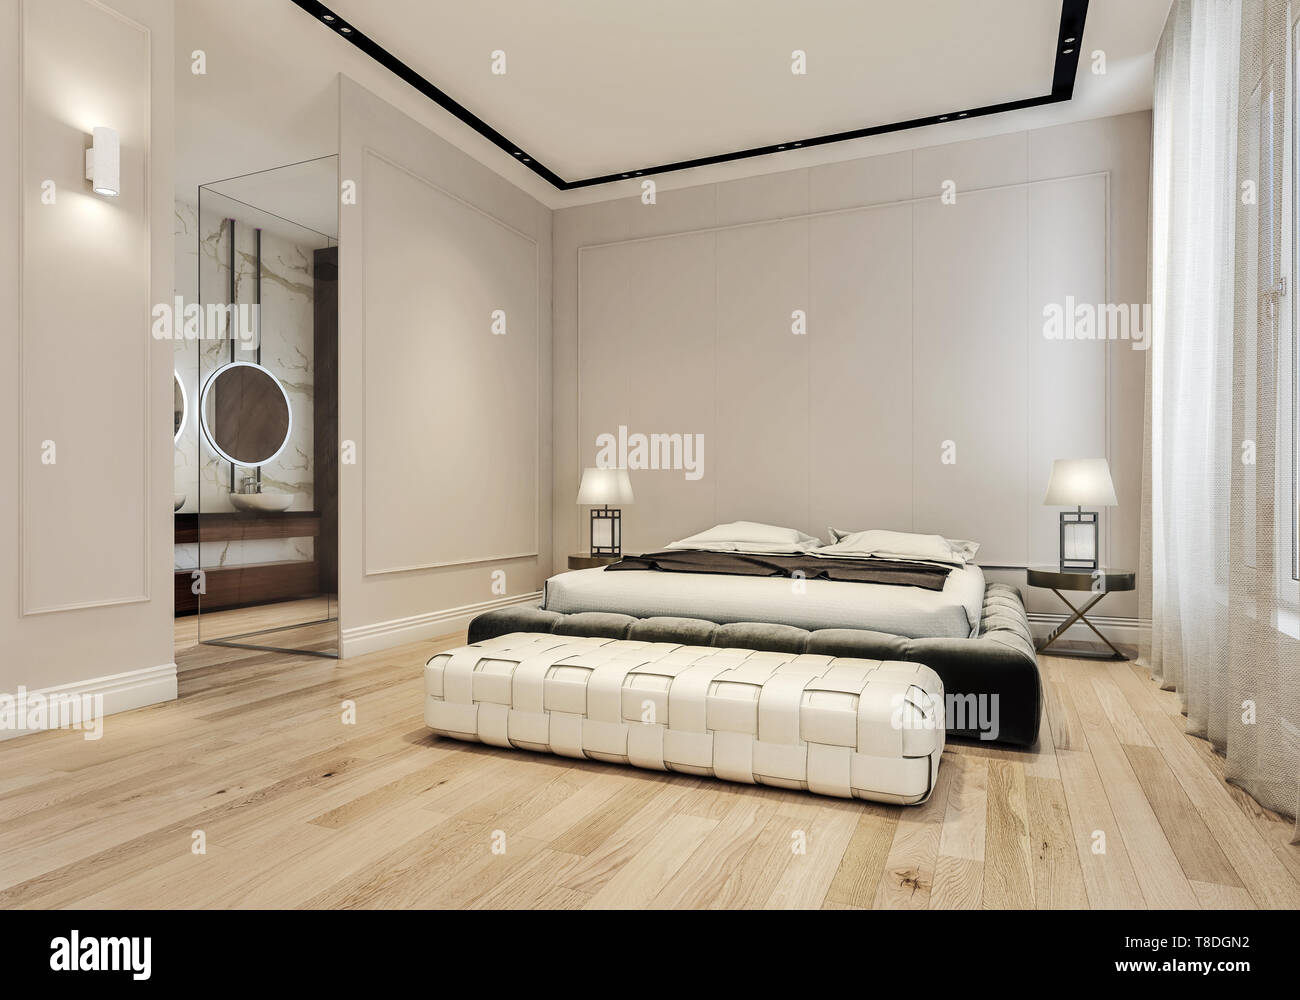 Modern interior design of master bedroom with large bathroom ...